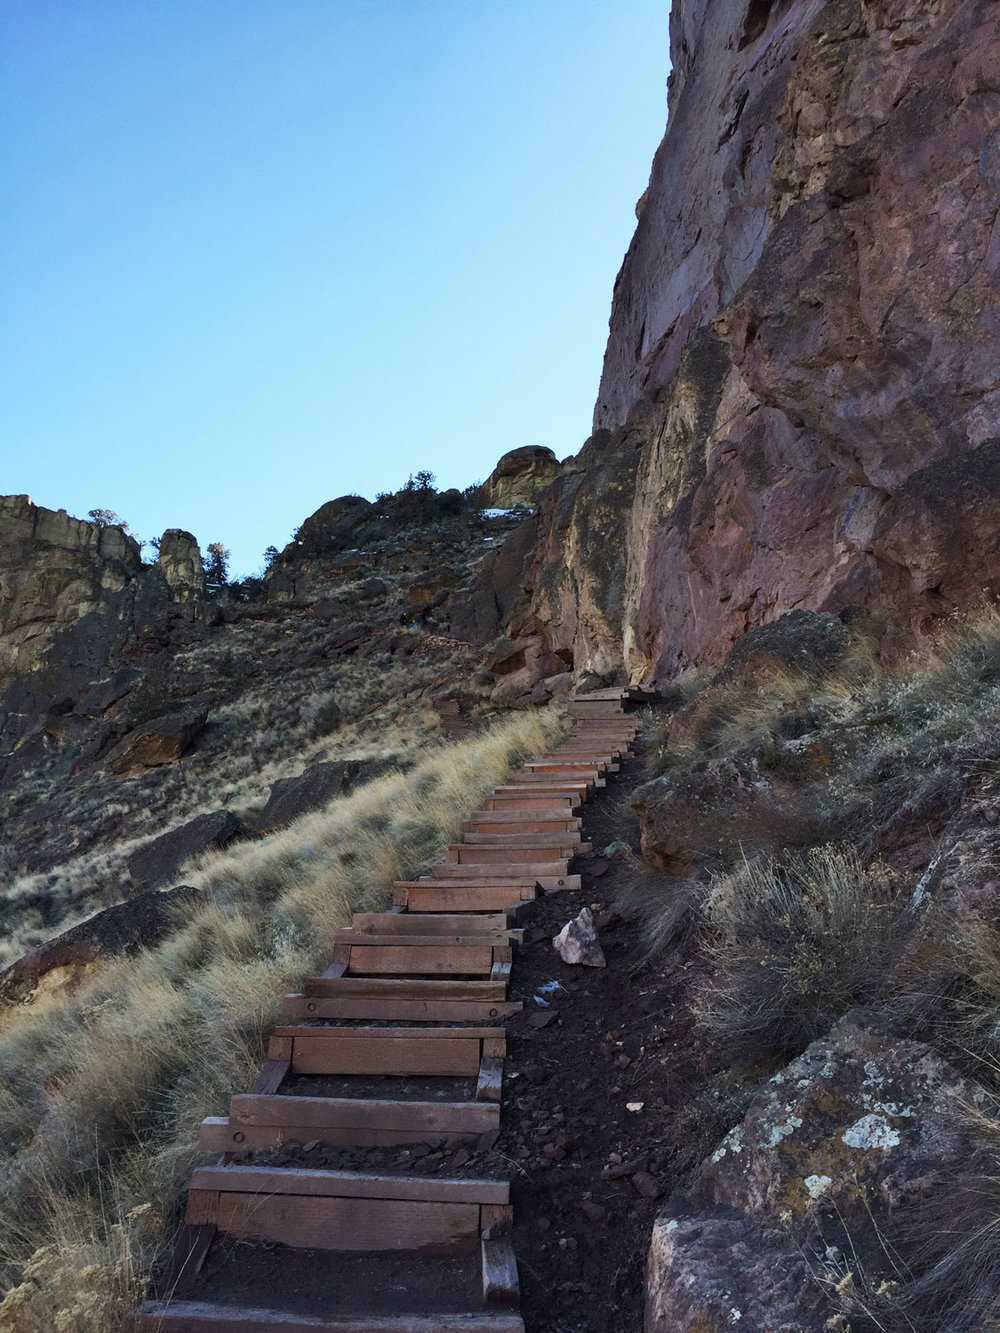 A long set of stairs has been added to the Misery Ridge Trail to recreate the path that was taken out by hikers cutting the trail at Smith Rock State Park.